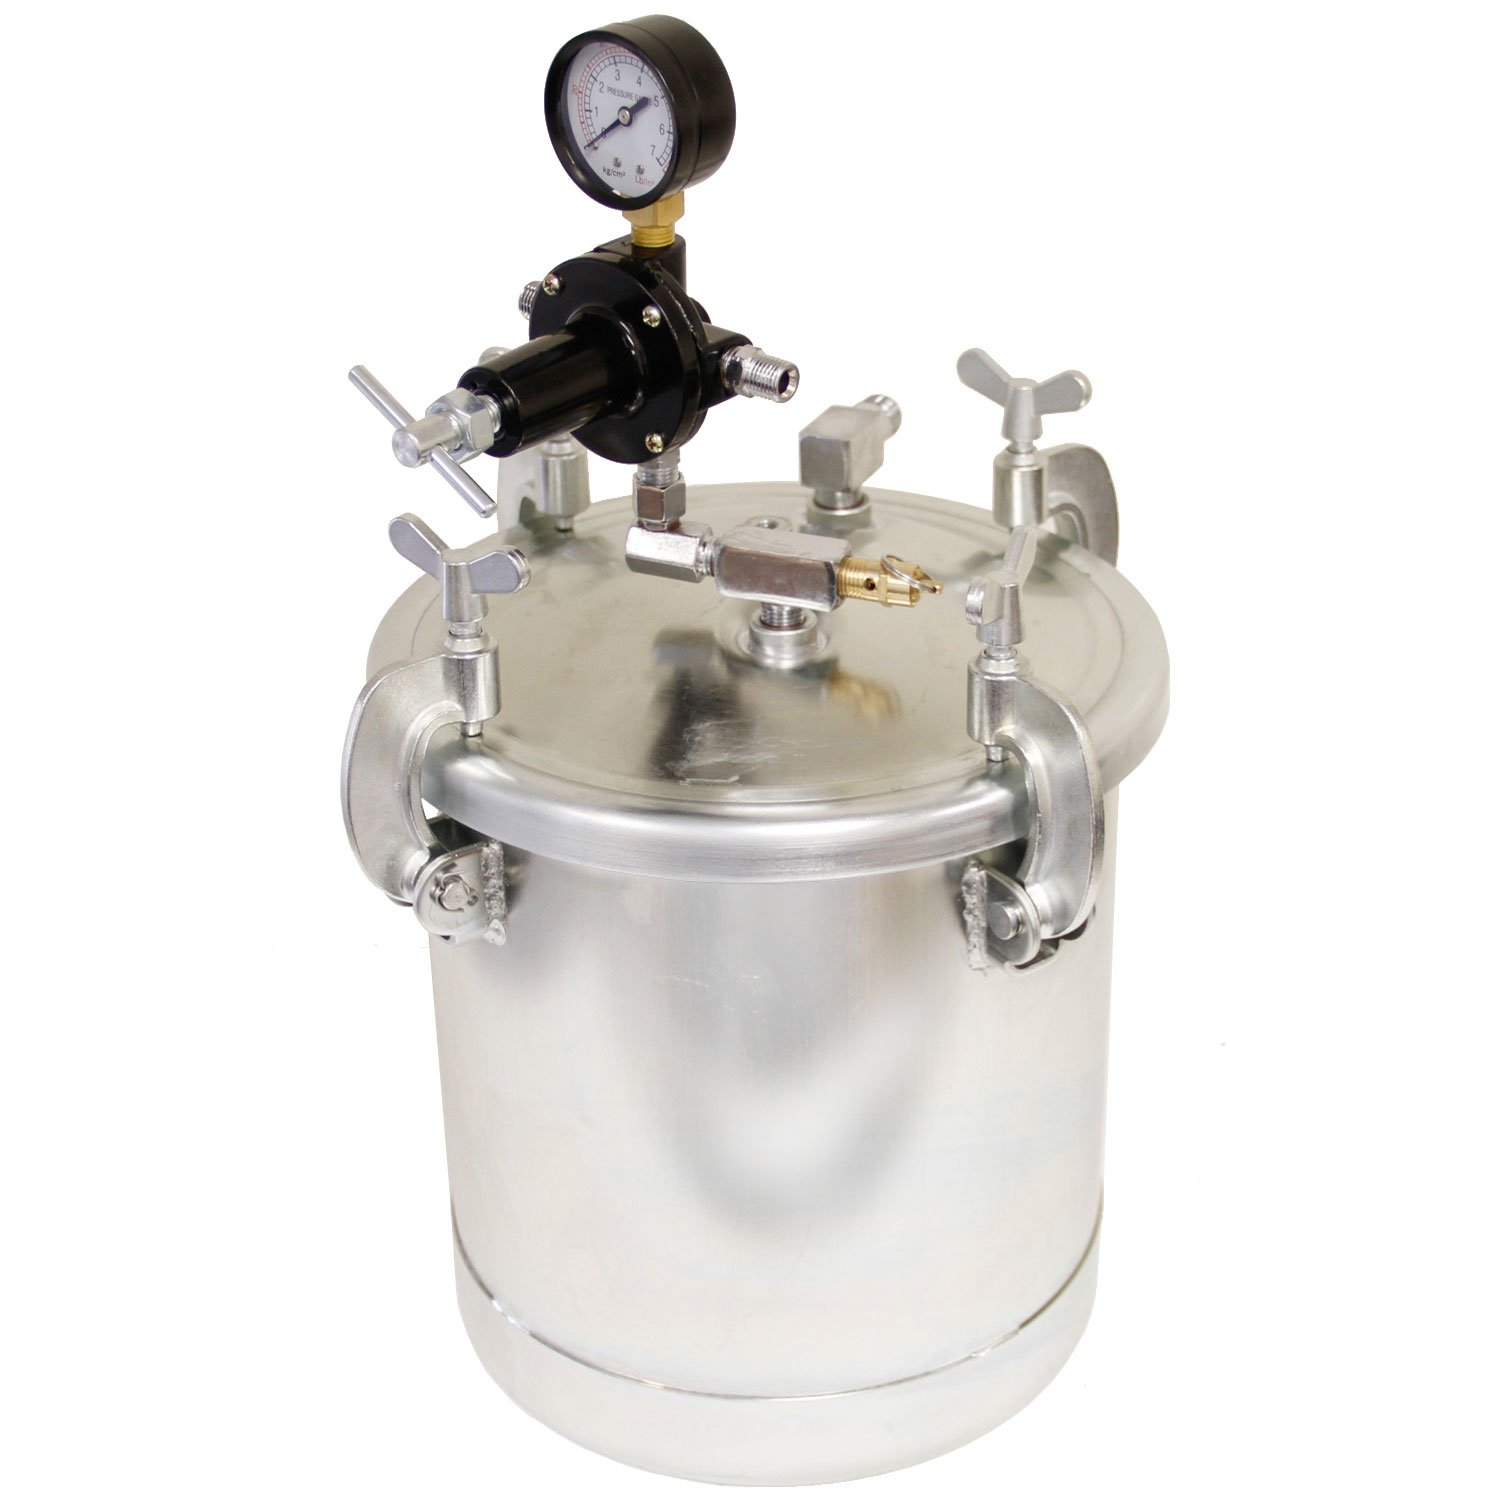 TCP Global 2-1/2 Gallon - (10 Liter) Pressure Pot Paint Tank with Regulator Pressure Gauge for Large Volume Painting and Autobody